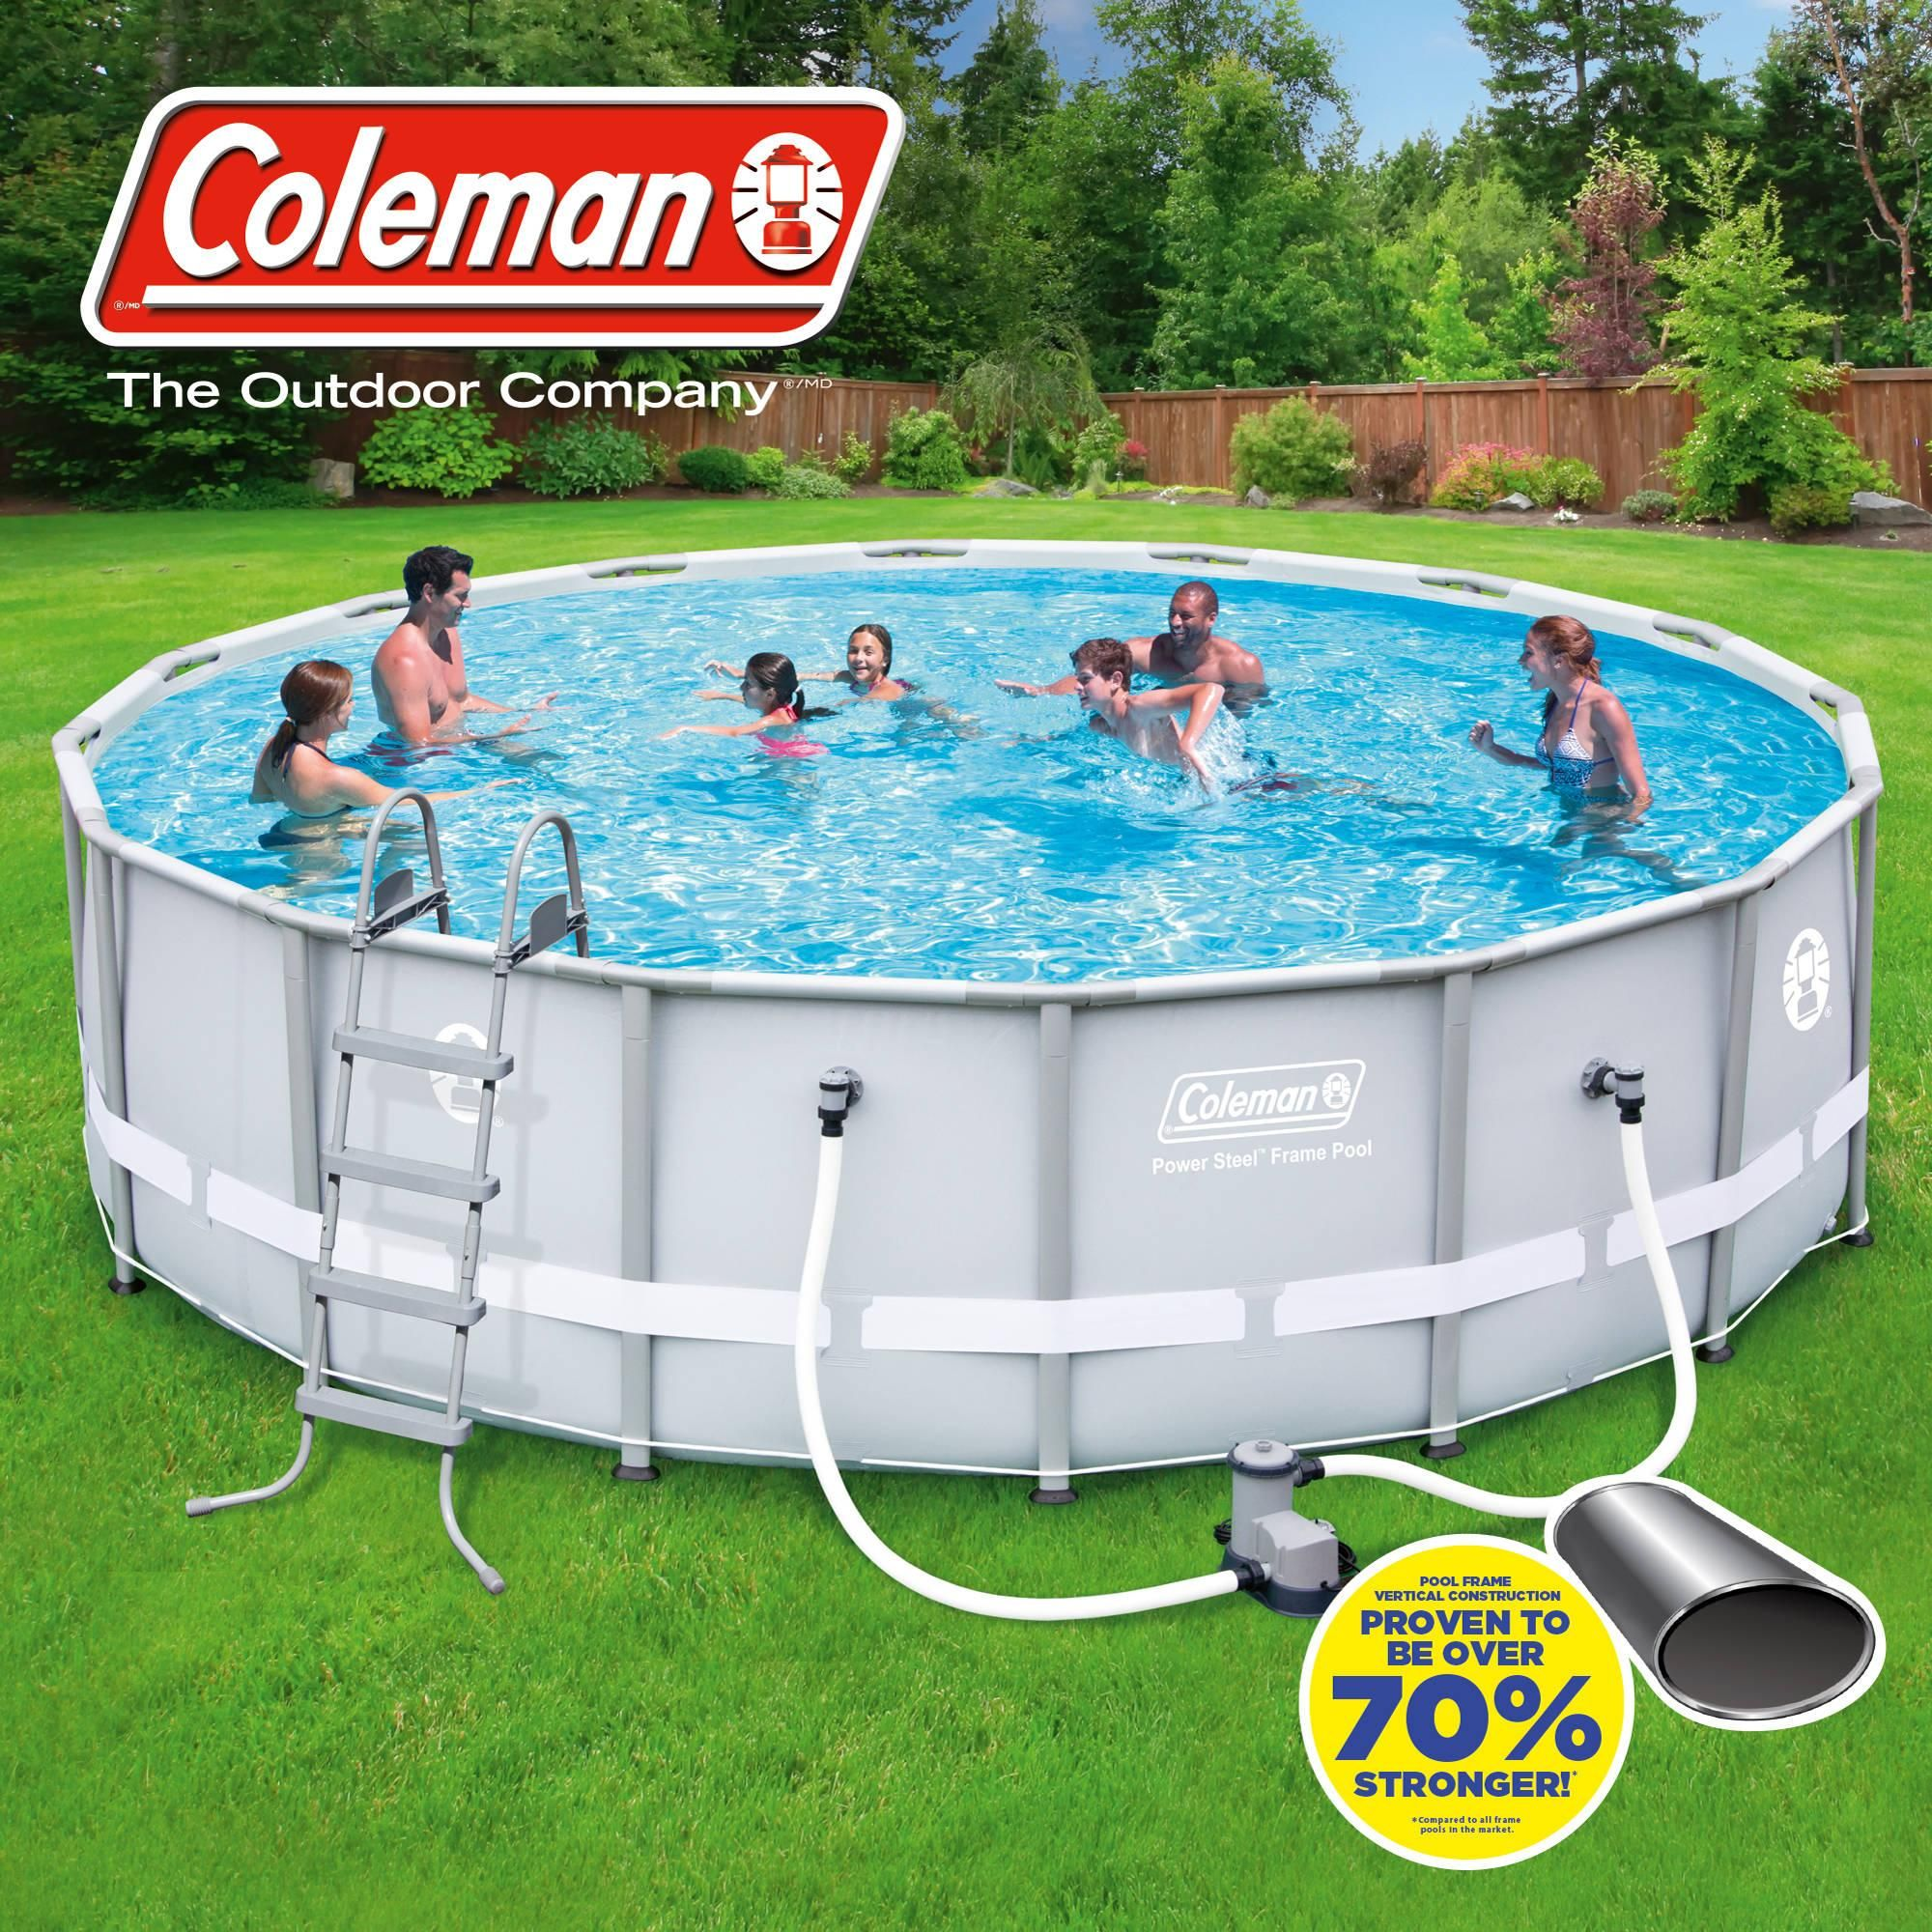 Exterior Endearing Blue Round Hard Plastic Swimming Pools Walmart For Kids On Wooden Deck Tile Enjoyable Out